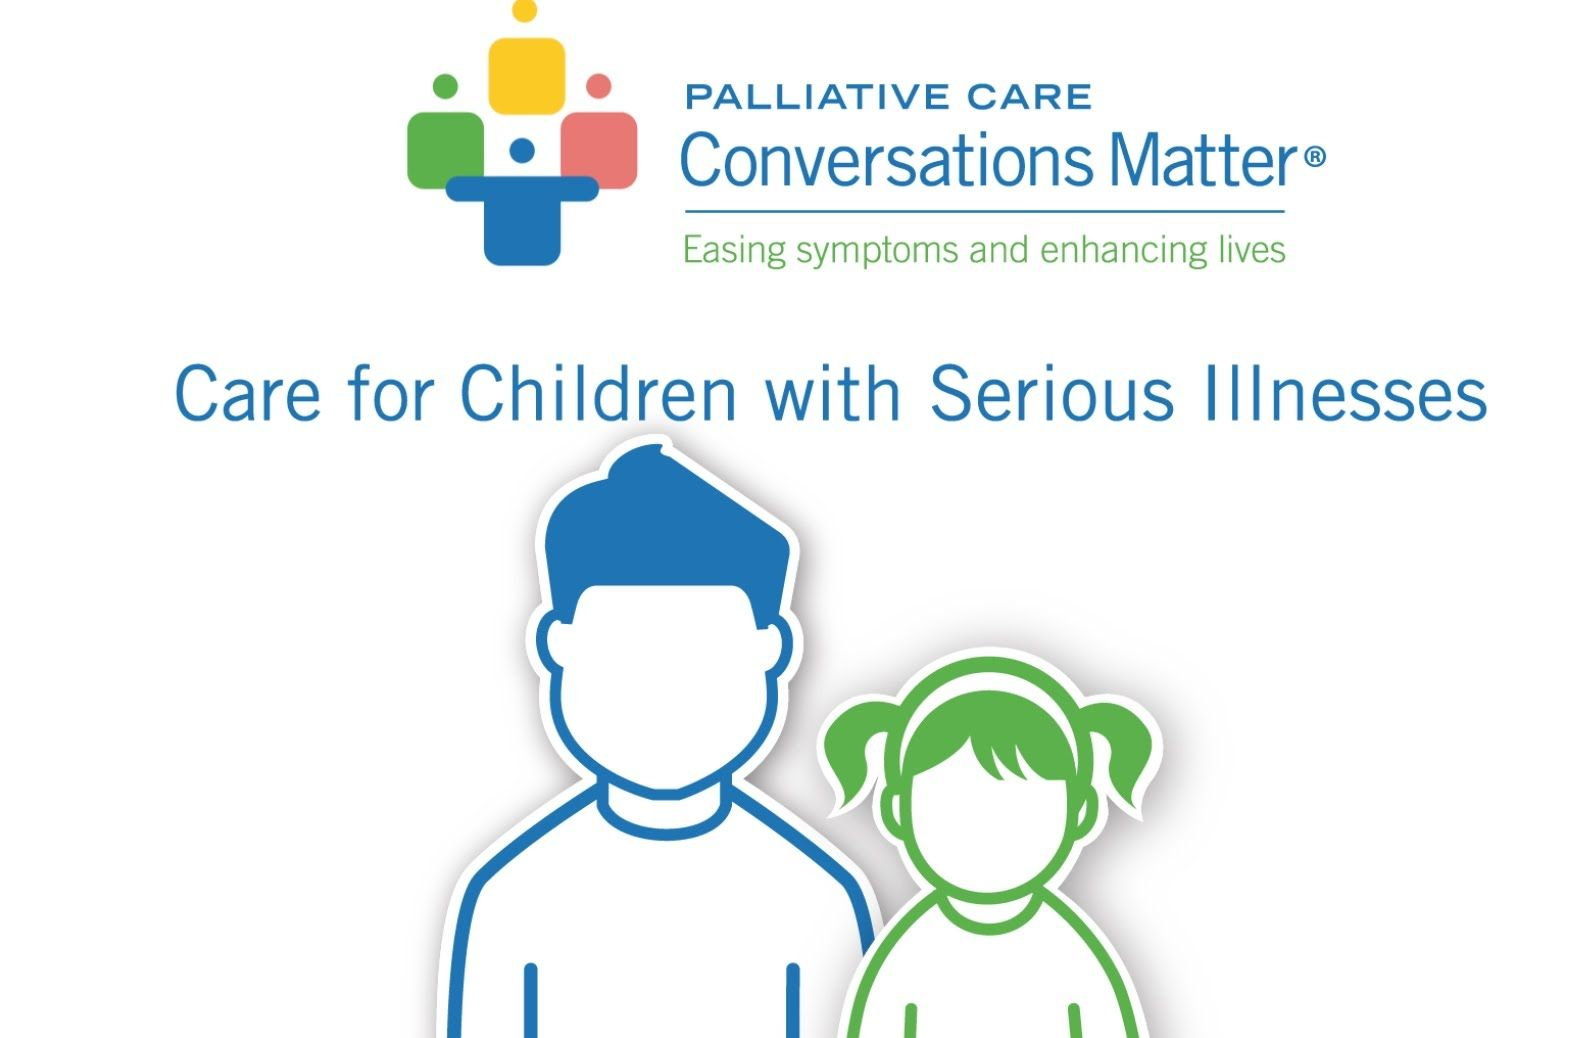 Care For Children With Serious Illnesses